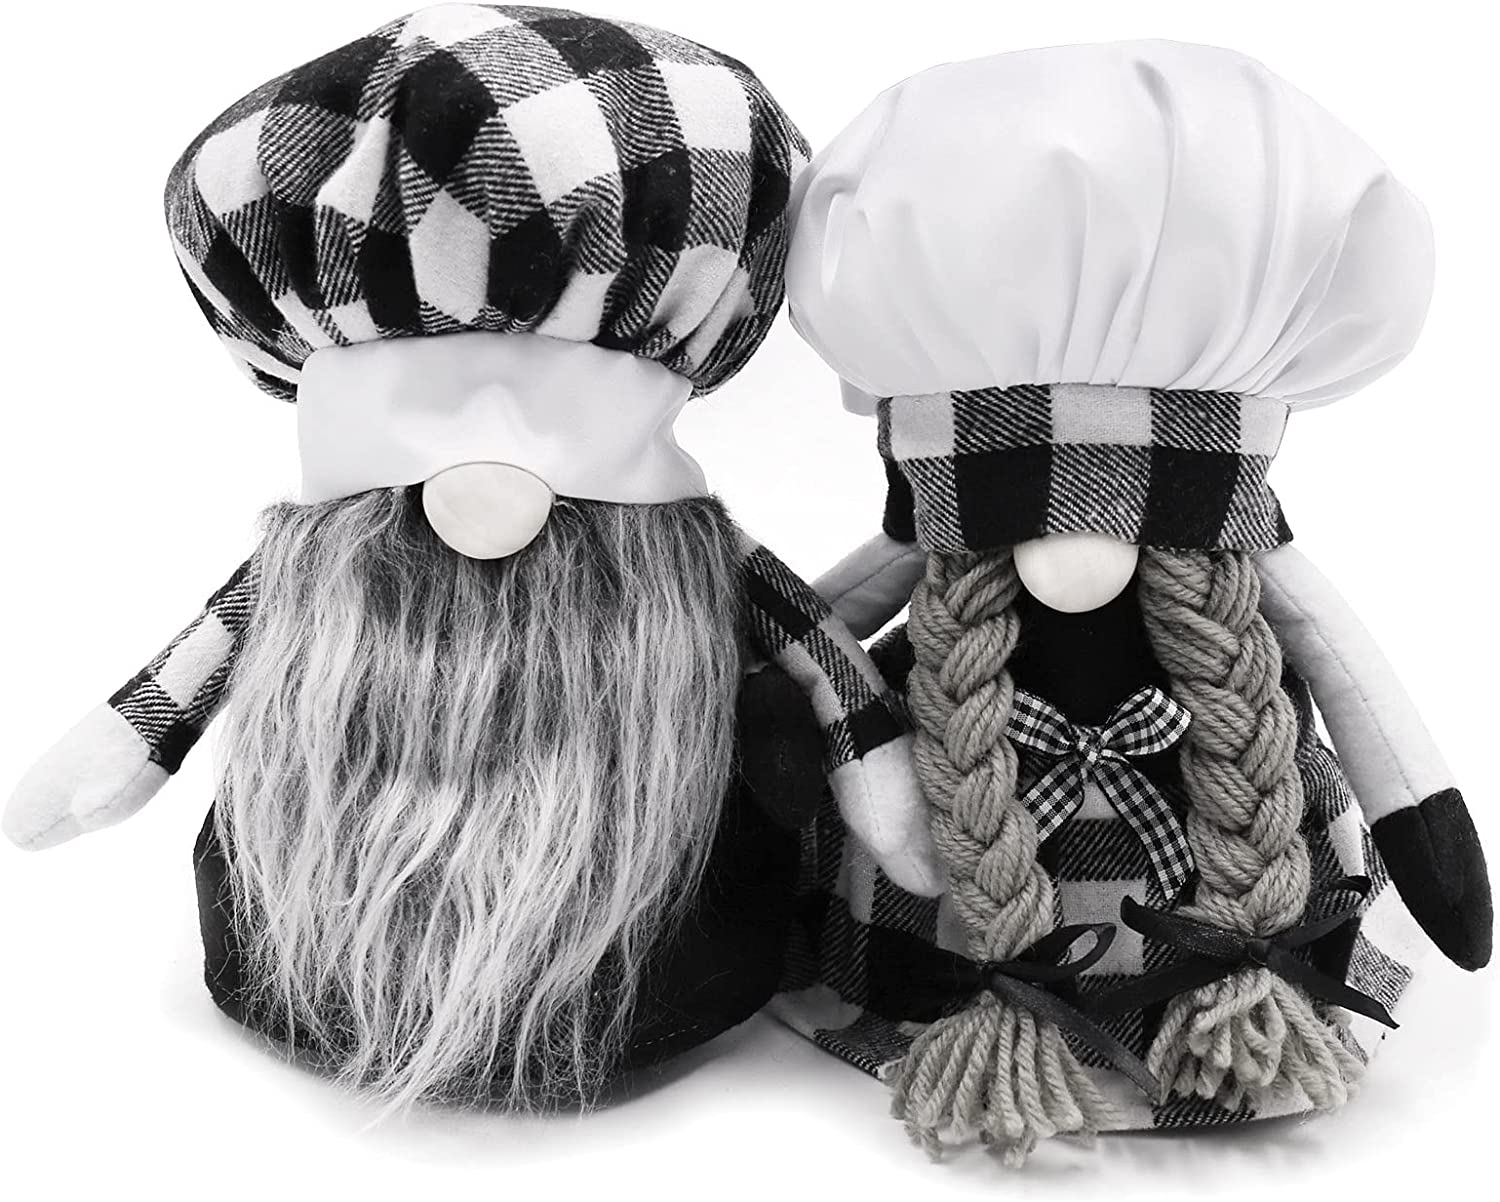 Kitchen Chef Gnomes Decorations Set Couples Gifts Farmhouse Home Decor Handmade Tomte Gnome Scandinavian Decor Plush Gifts for Couples Household Ornaments Set of 2